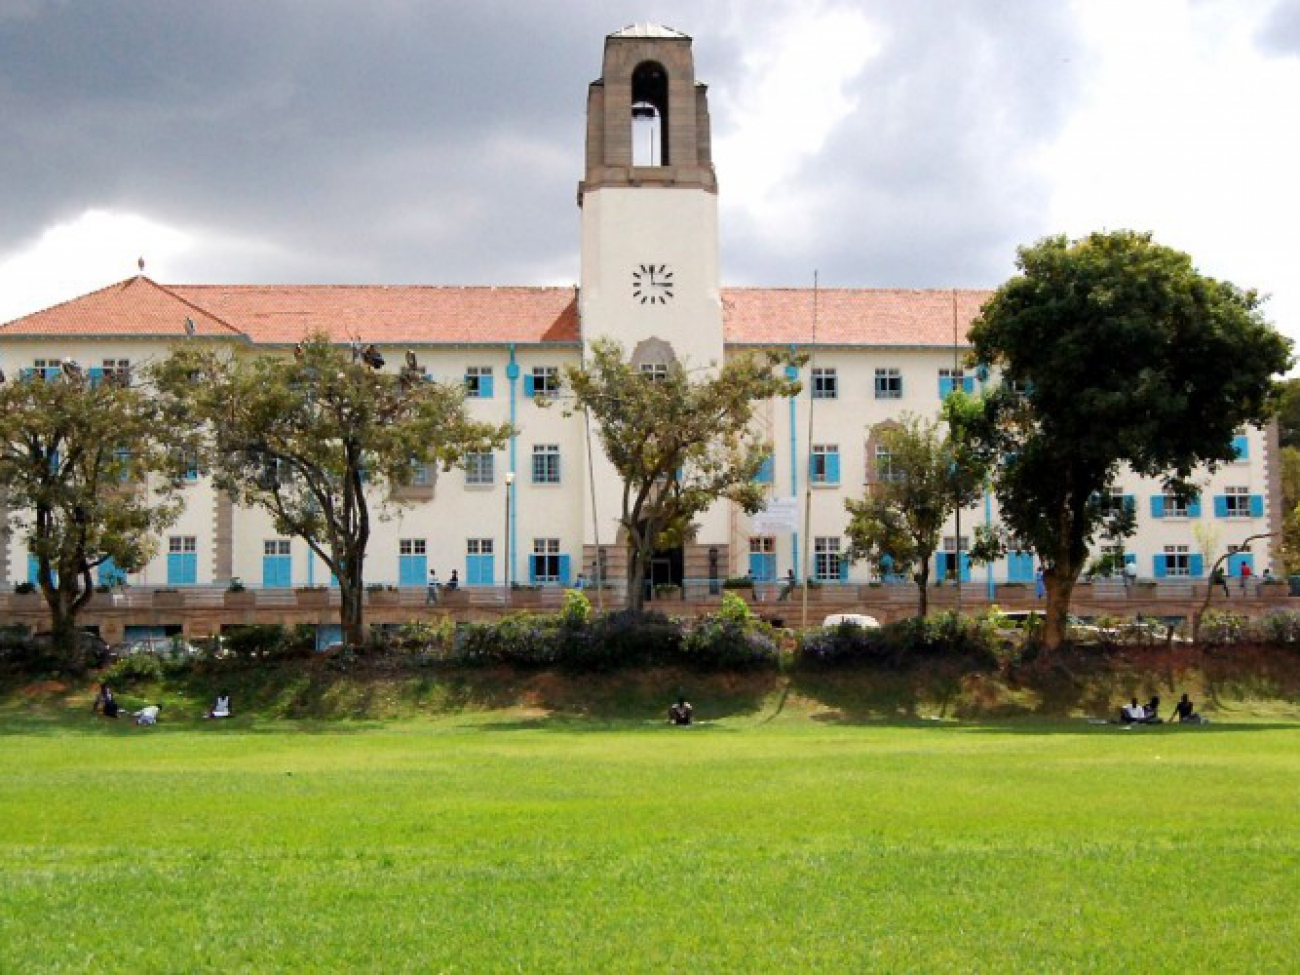 field_image_Makerere-Main-Building-Front-Freedom-Square-22ndOct2012-Story_3